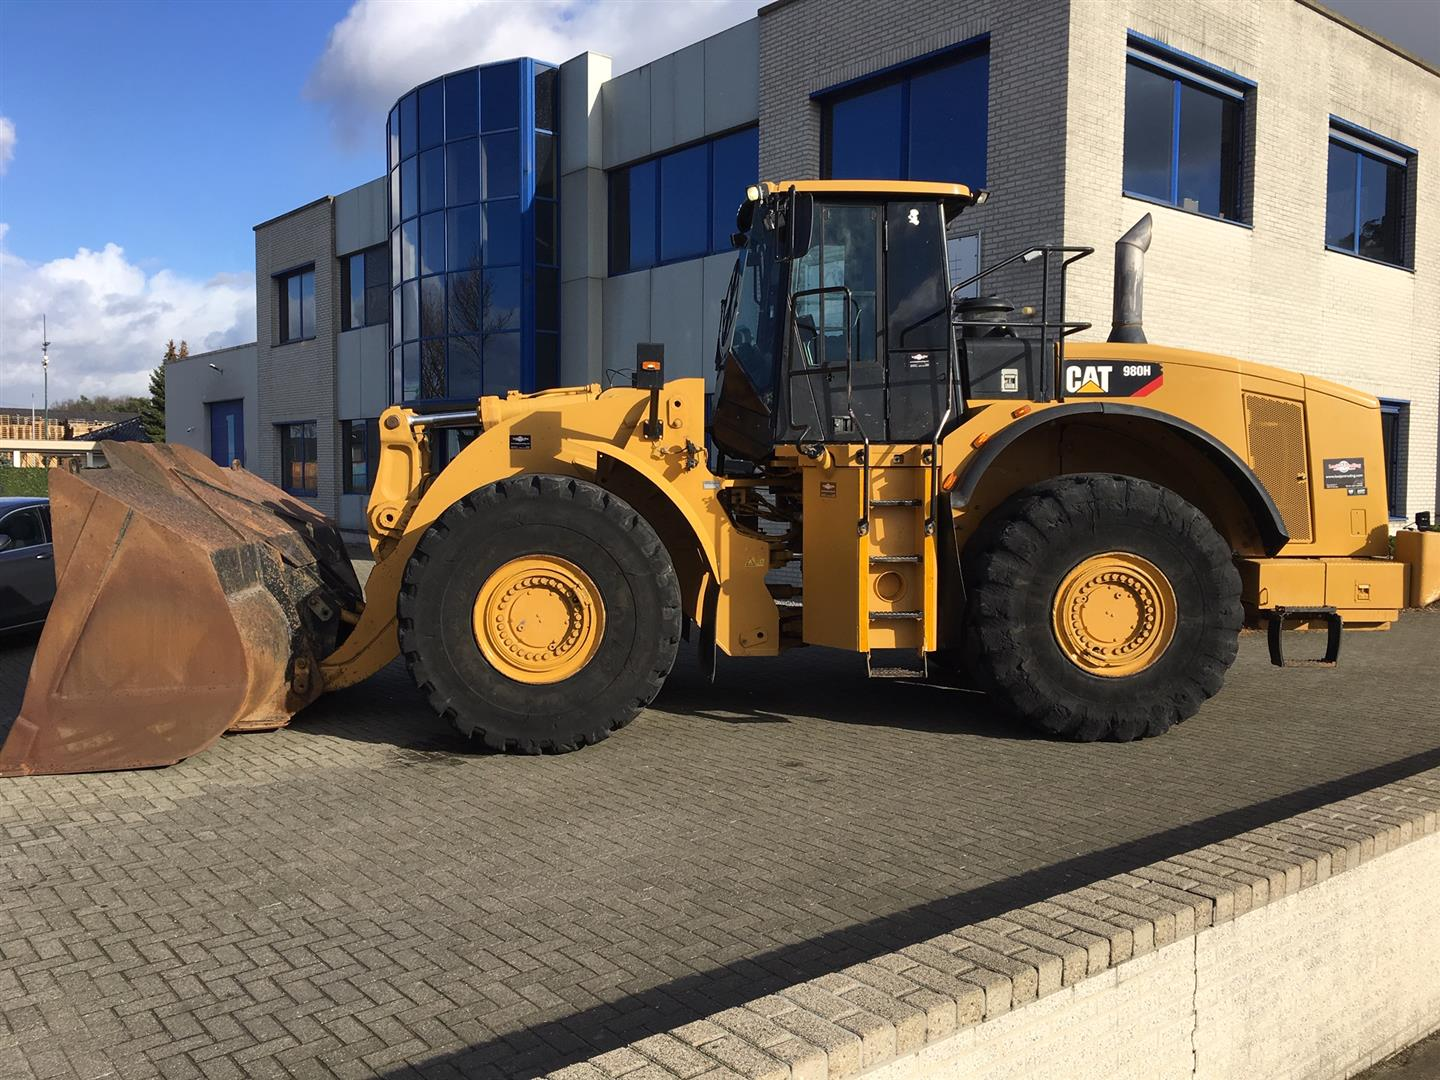 Just in! Caterpillar 980H year 2007